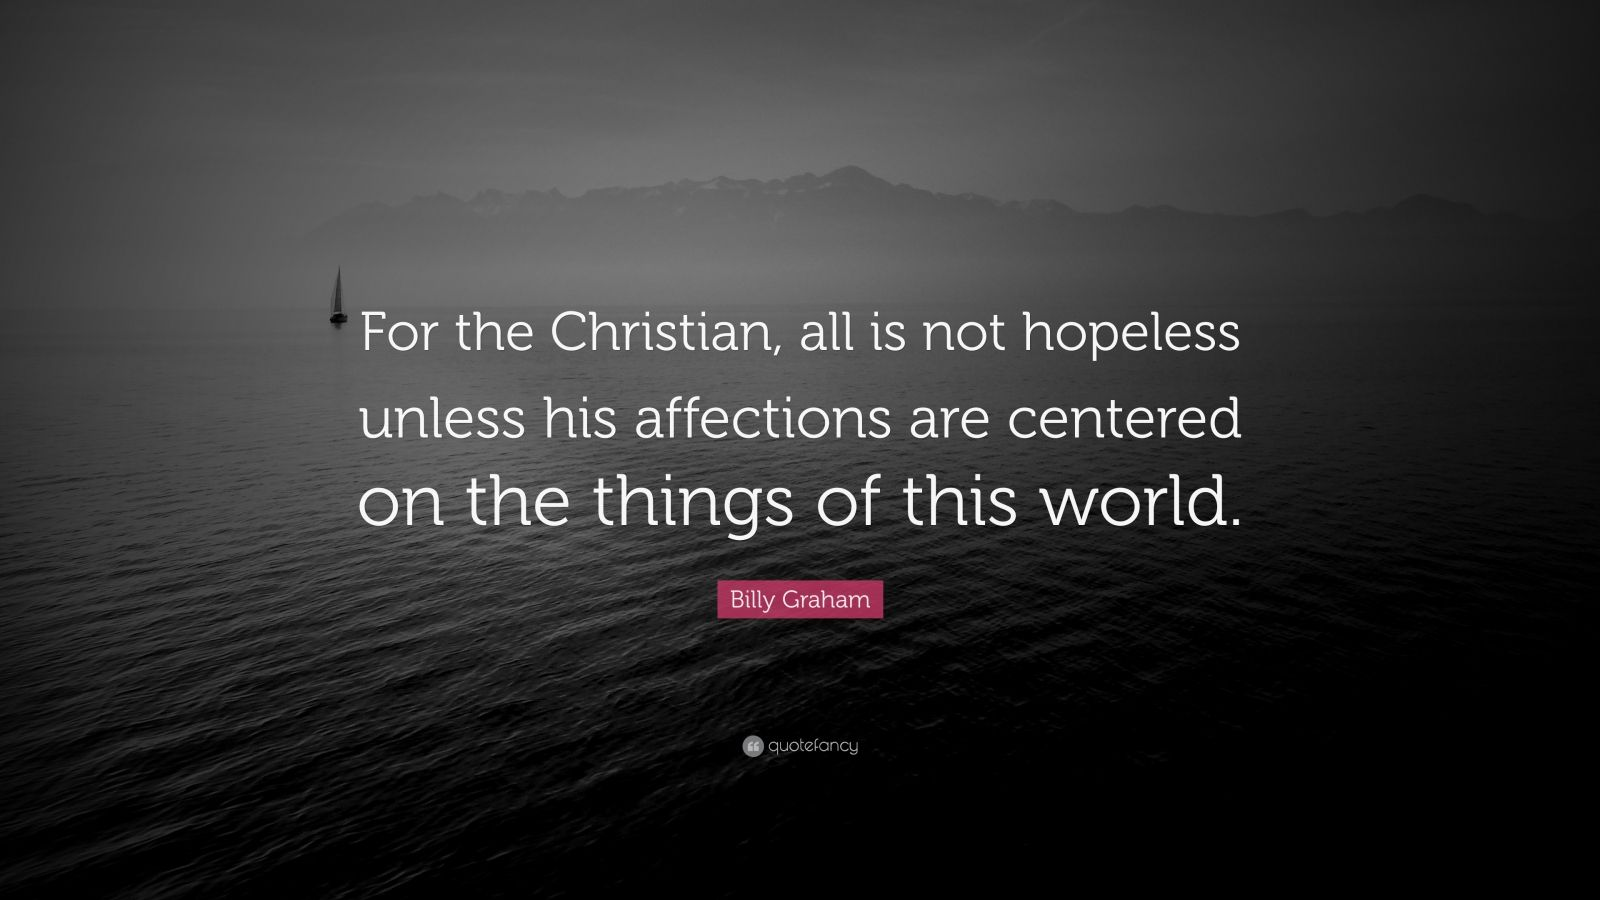 """Billy Graham Quote: """"For the Christian, all is not hopeless unless his affections are centered on the things of this world."""""""